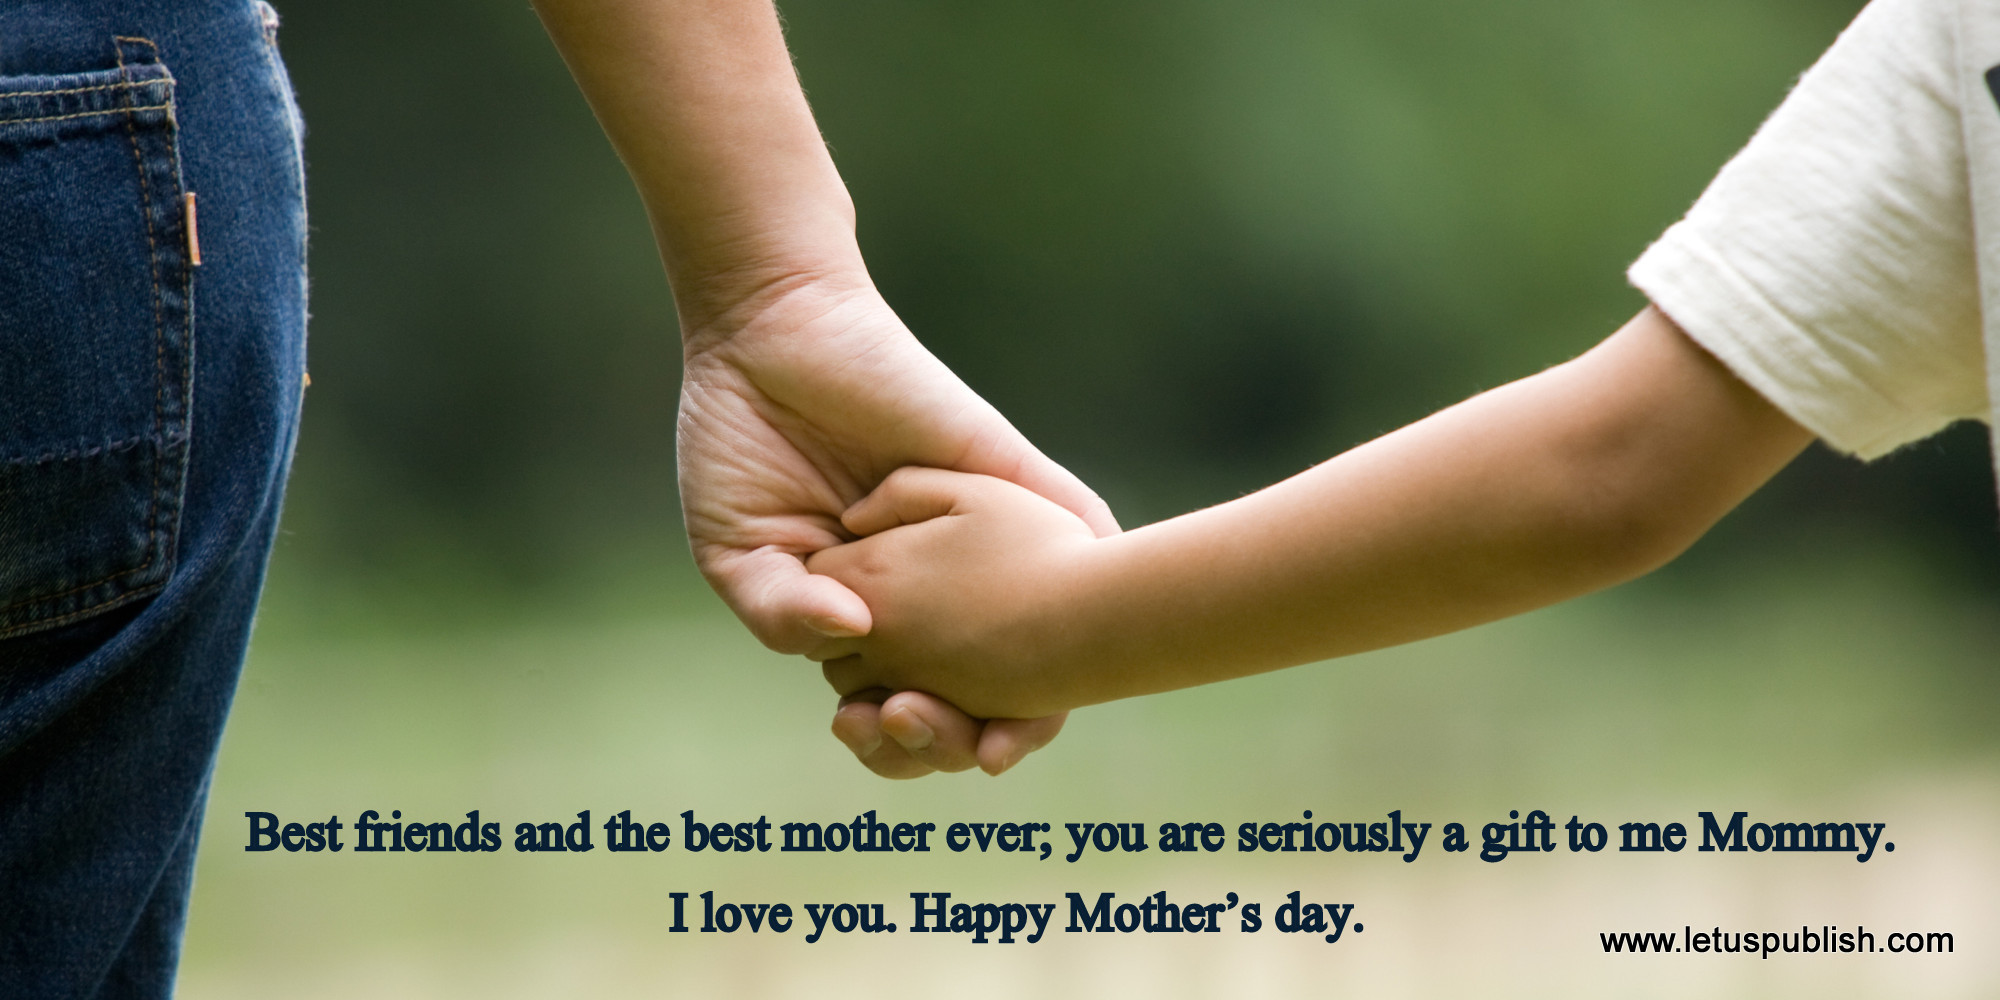 Quotes to show some love to your Mom